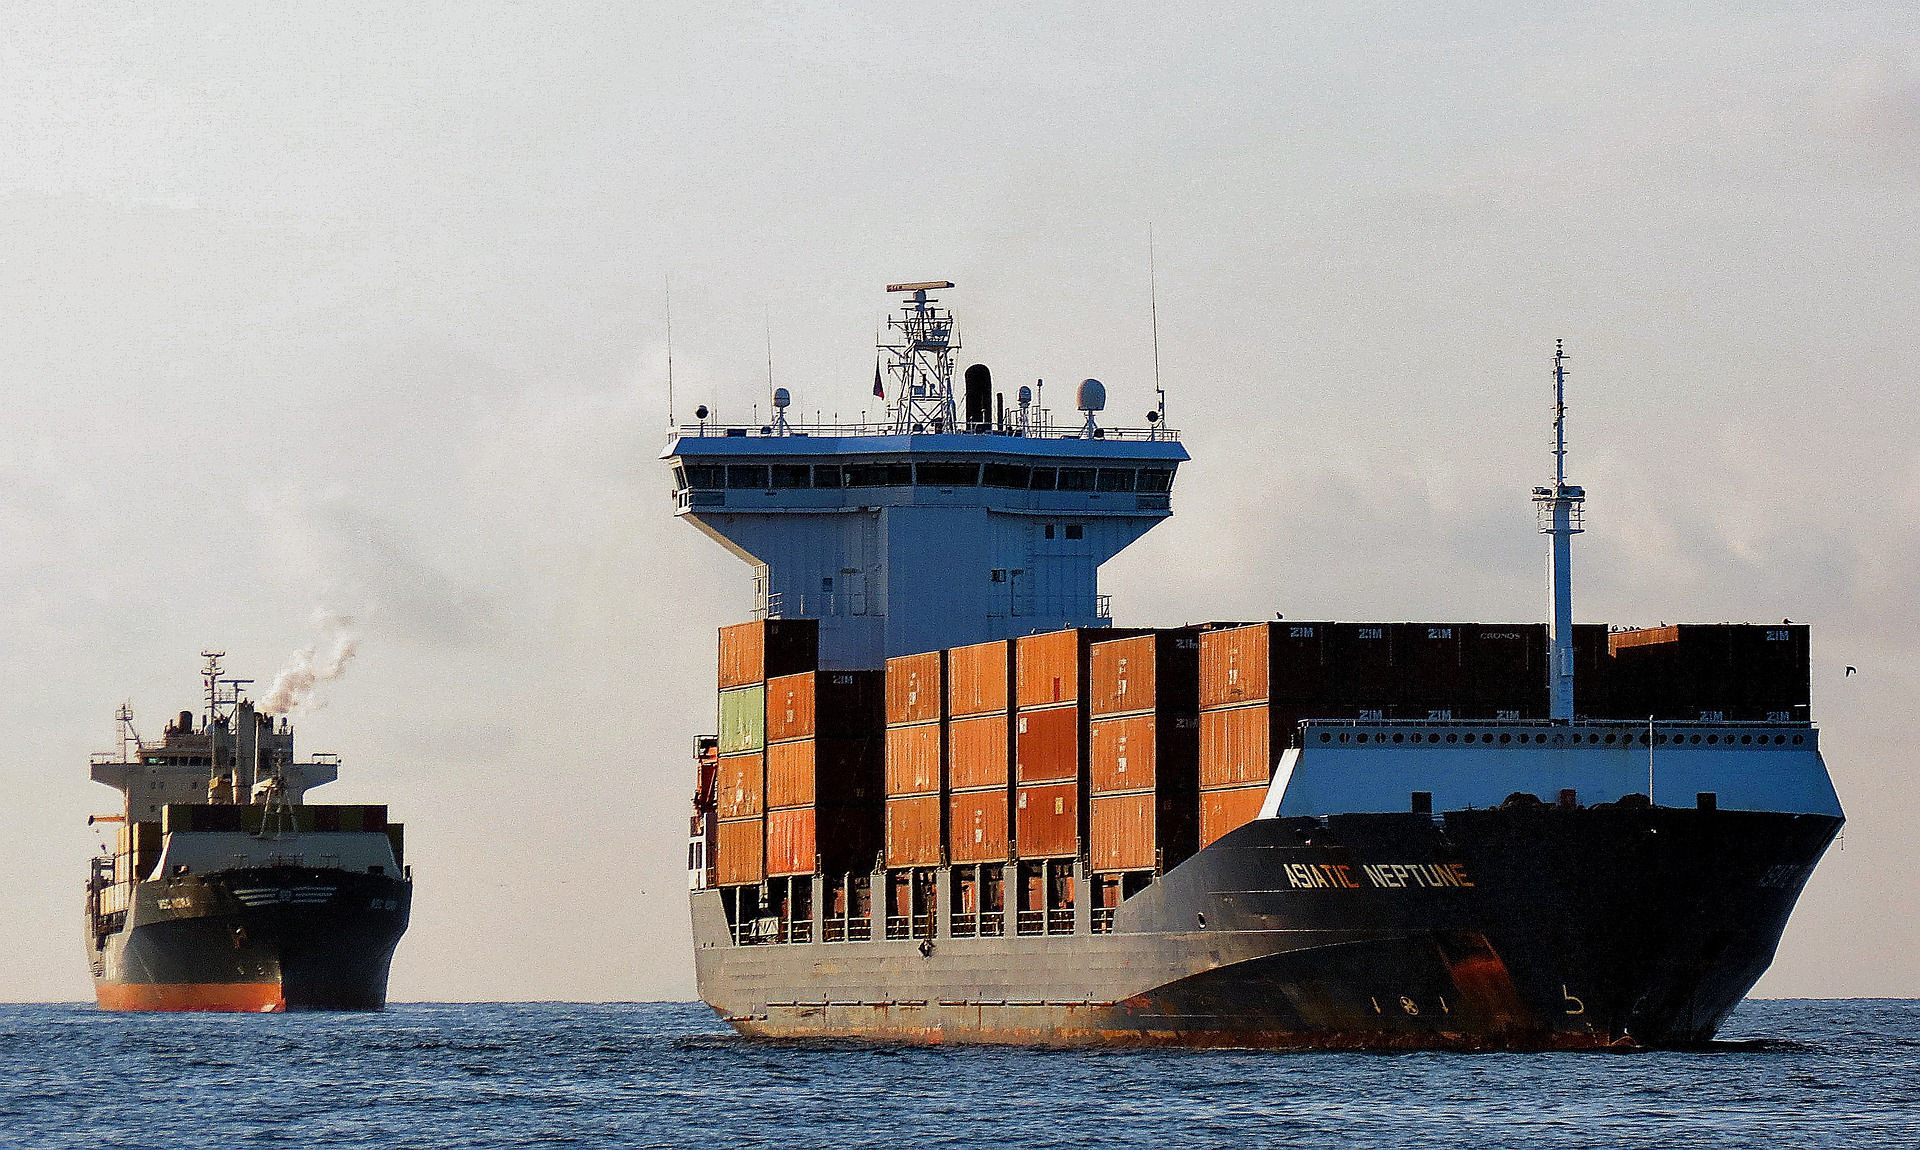 Hundreds of Ships Wait to Unload. Is This Administration REALLY That Inept?